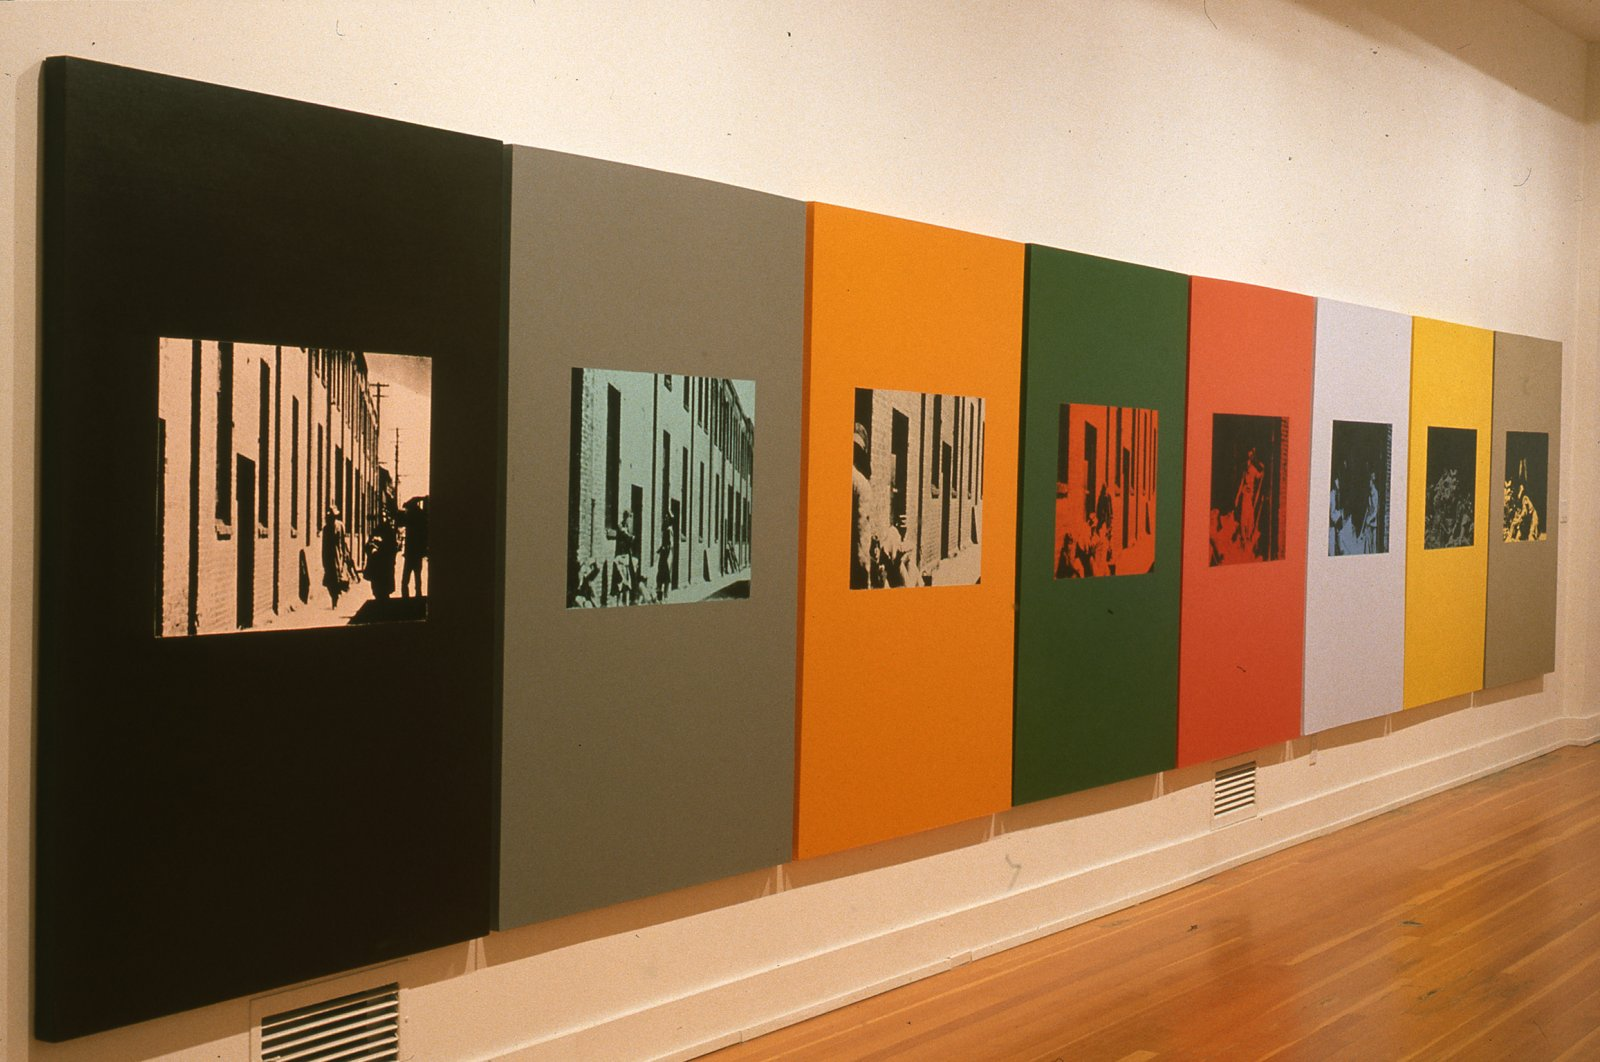 Ian Wallace,Poverty 1982(detail), 1982,oil-based silkscreen over acrylic paint on canvas, 8 panels,71 x 376 in. (180 x 955 cm)